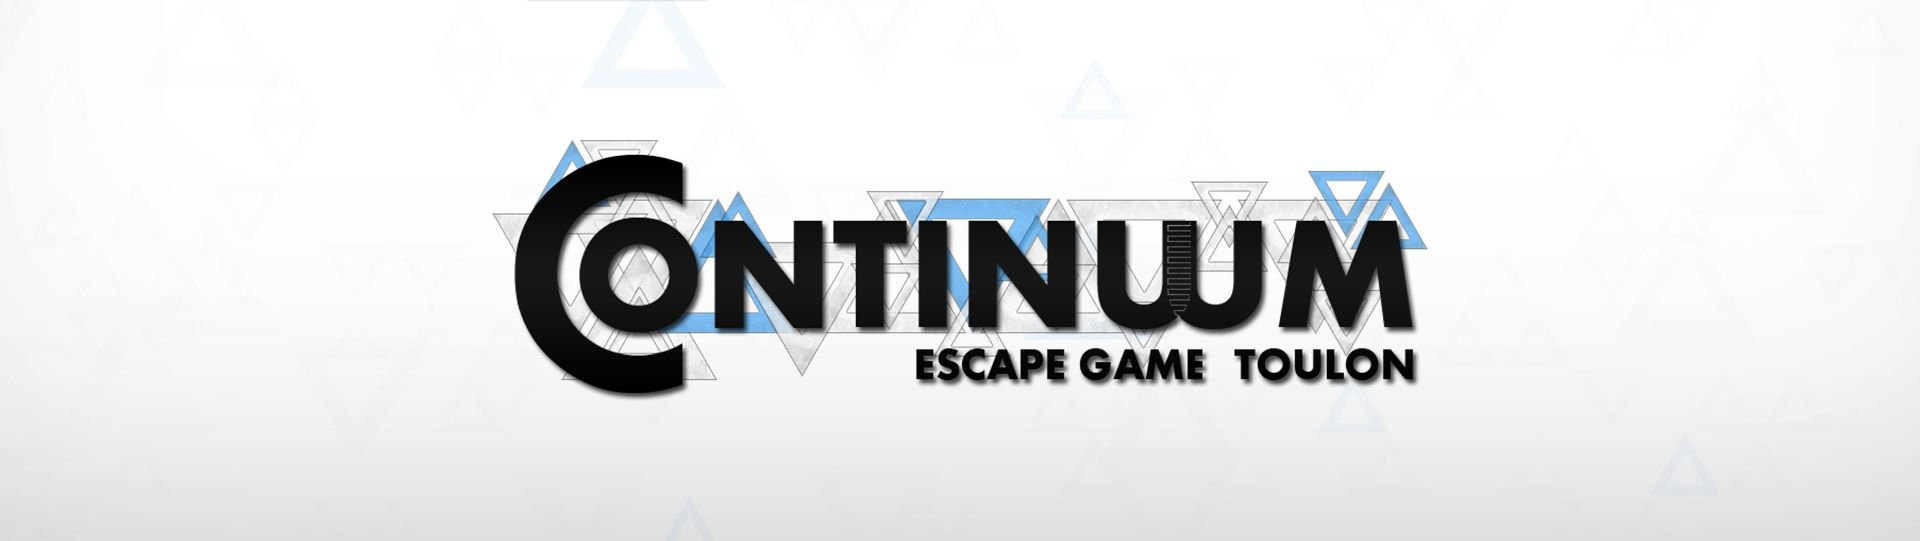 Escape Game Continuum à Toulon.jpg